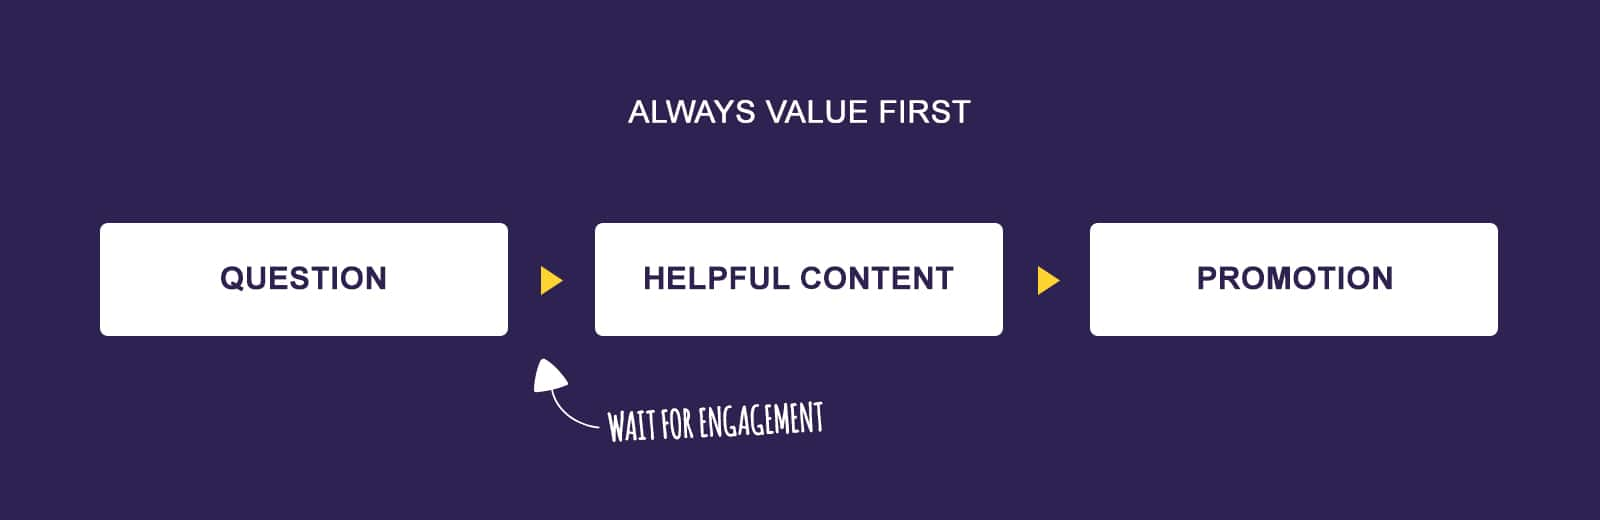 Always value first